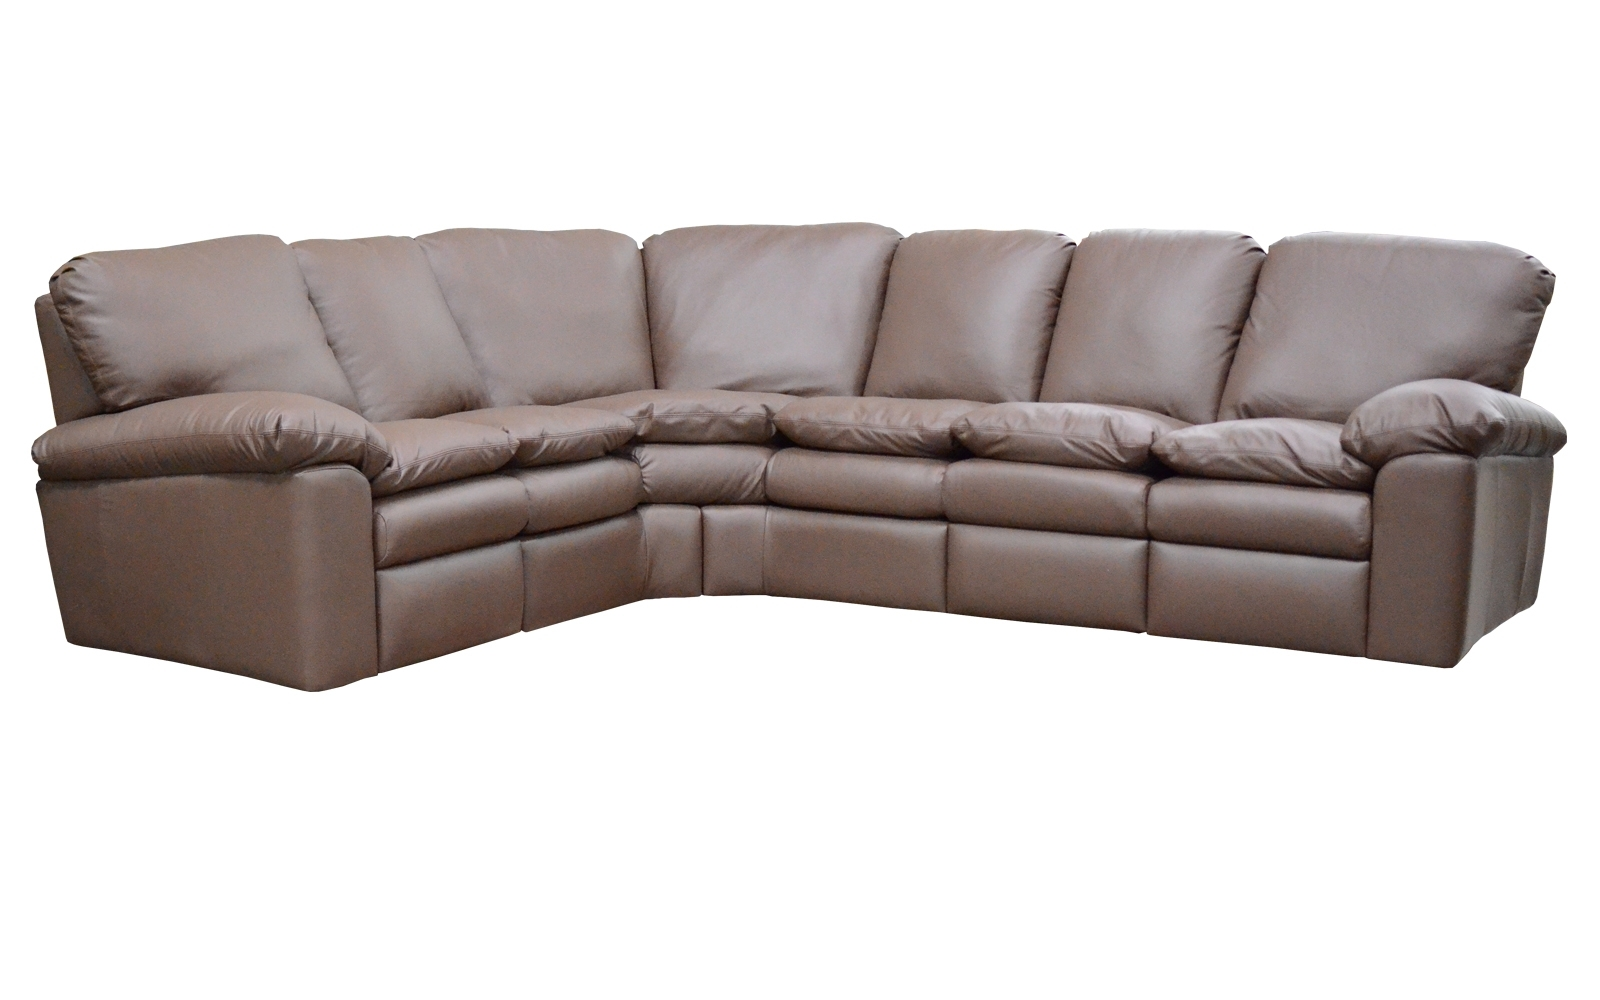 Trendy El Dorado Sectional – Omnia Leather In El Dorado Sectional Sofas (View 13 of 15)